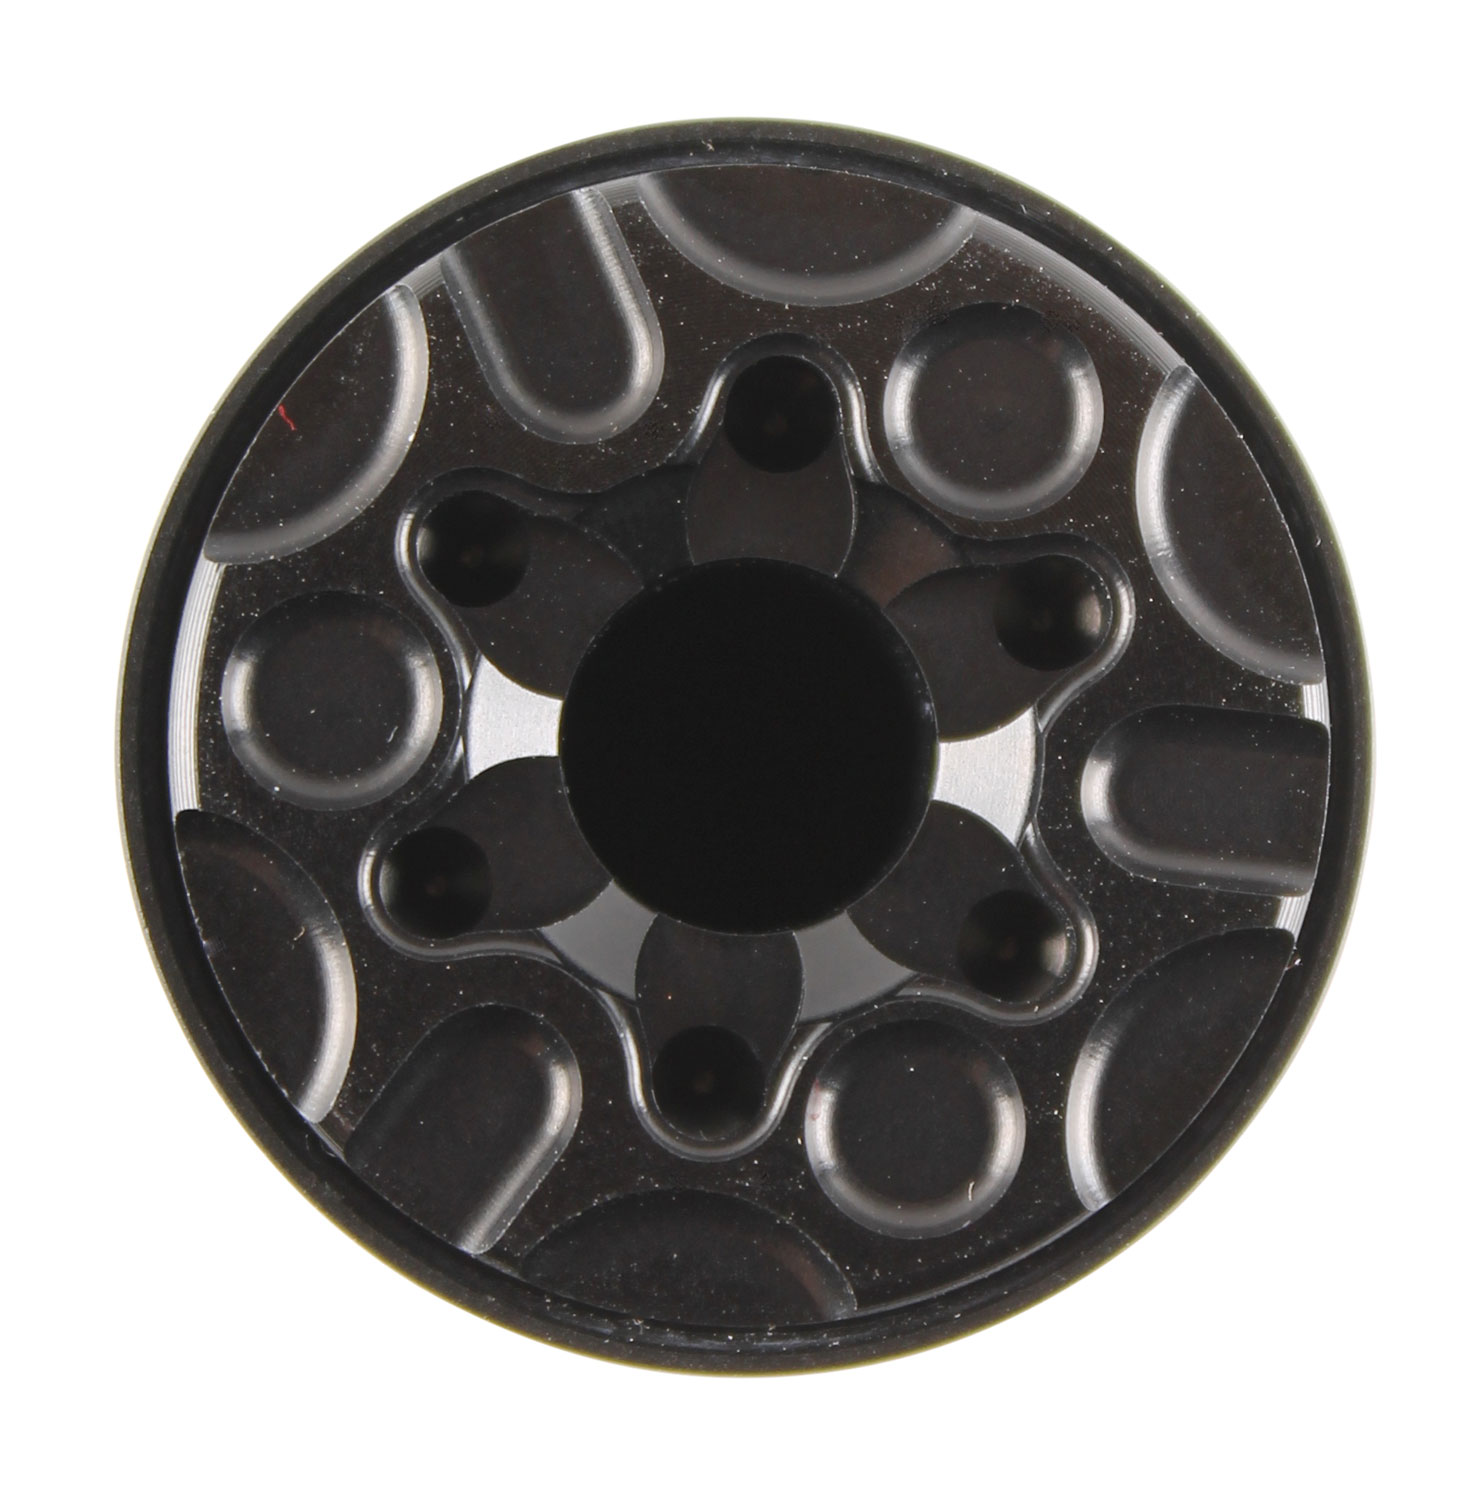 CGS SUPPRESSORS CGS-MOD9-REAR-CAP MOD9 Rear Cap  9mm Luger Black Anodized